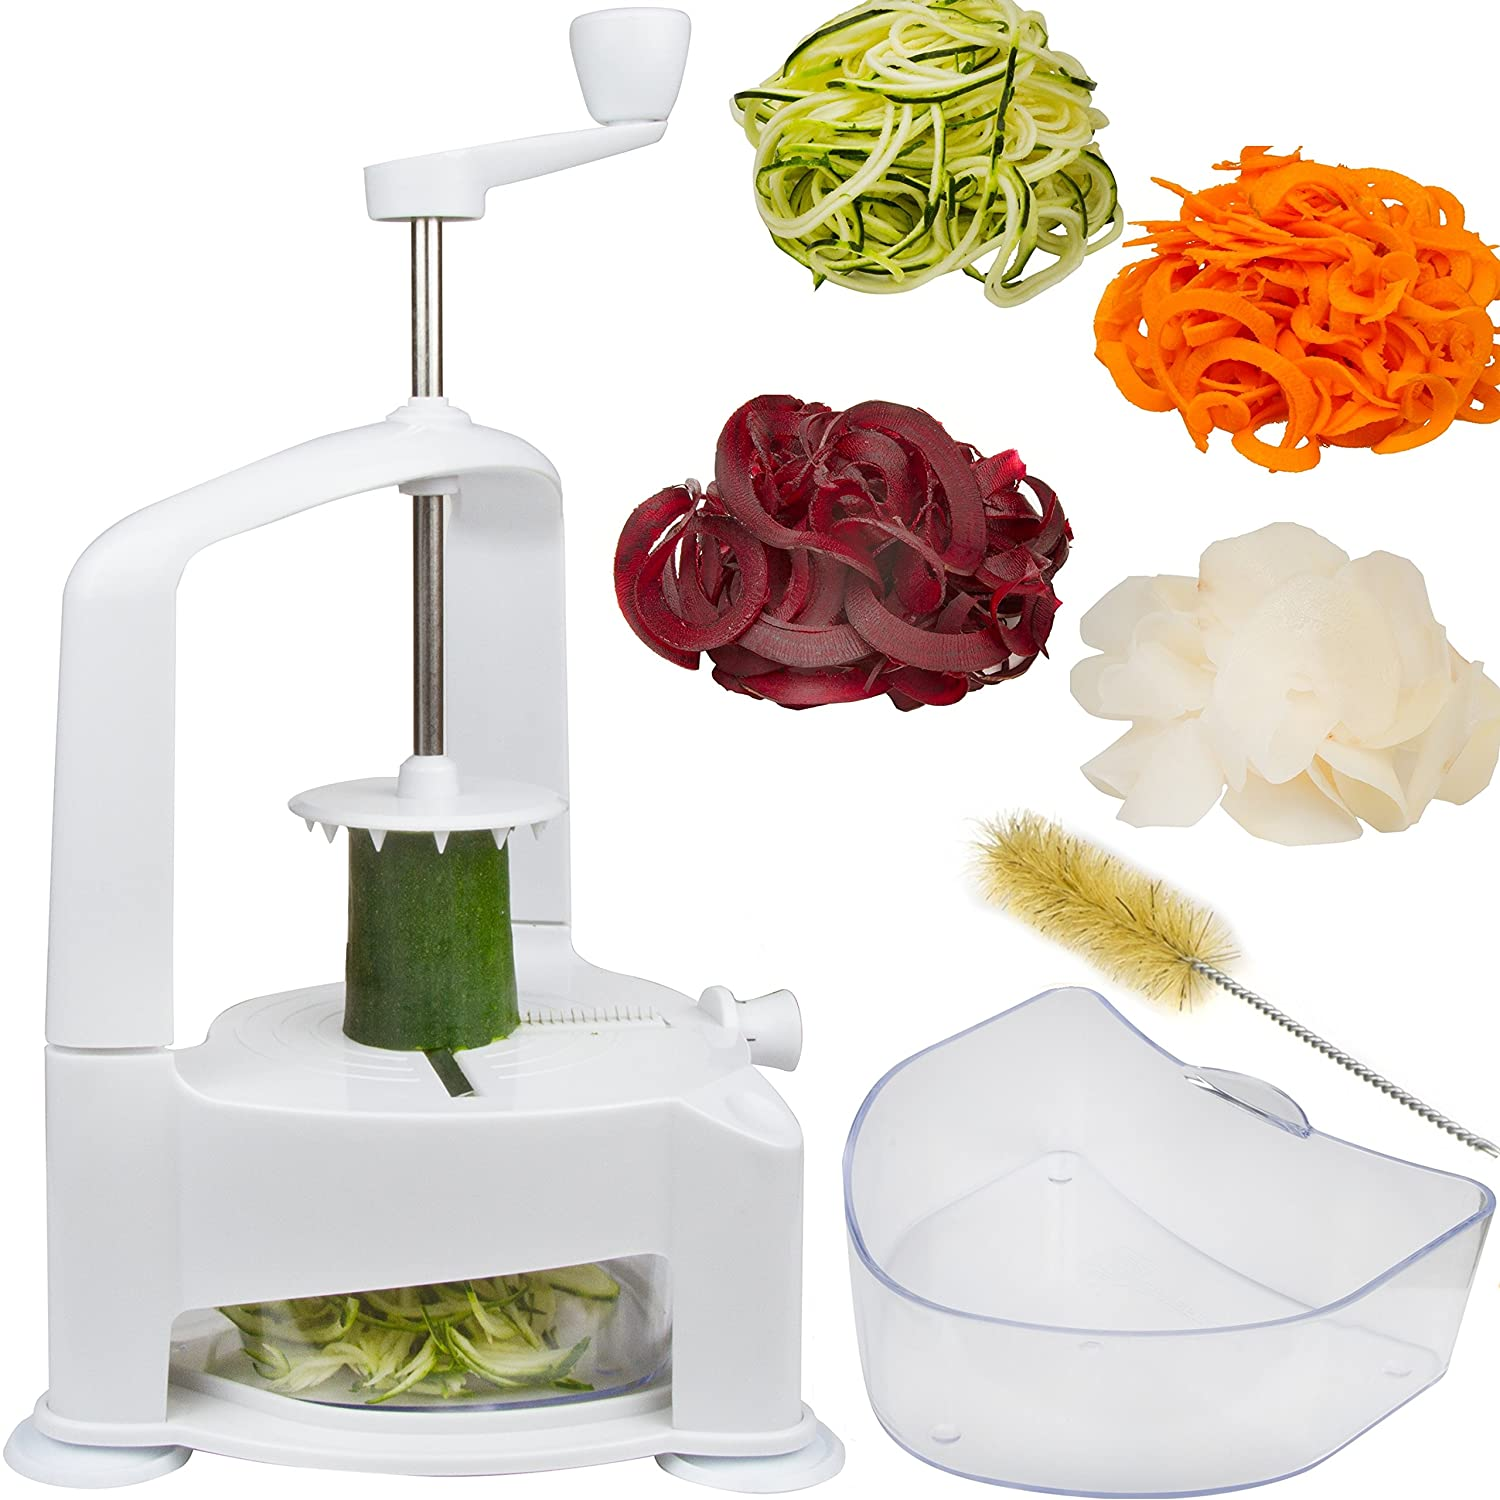 Brieftons Vertico Spiralizer: Vegetable Spiral Slicer, Fresh Veggie Spaghetti & Pasta Maker for Low Carb Healthy Vegetable Meals, With Cleaning Brush and 3 Recipe Ebooks 646437402521